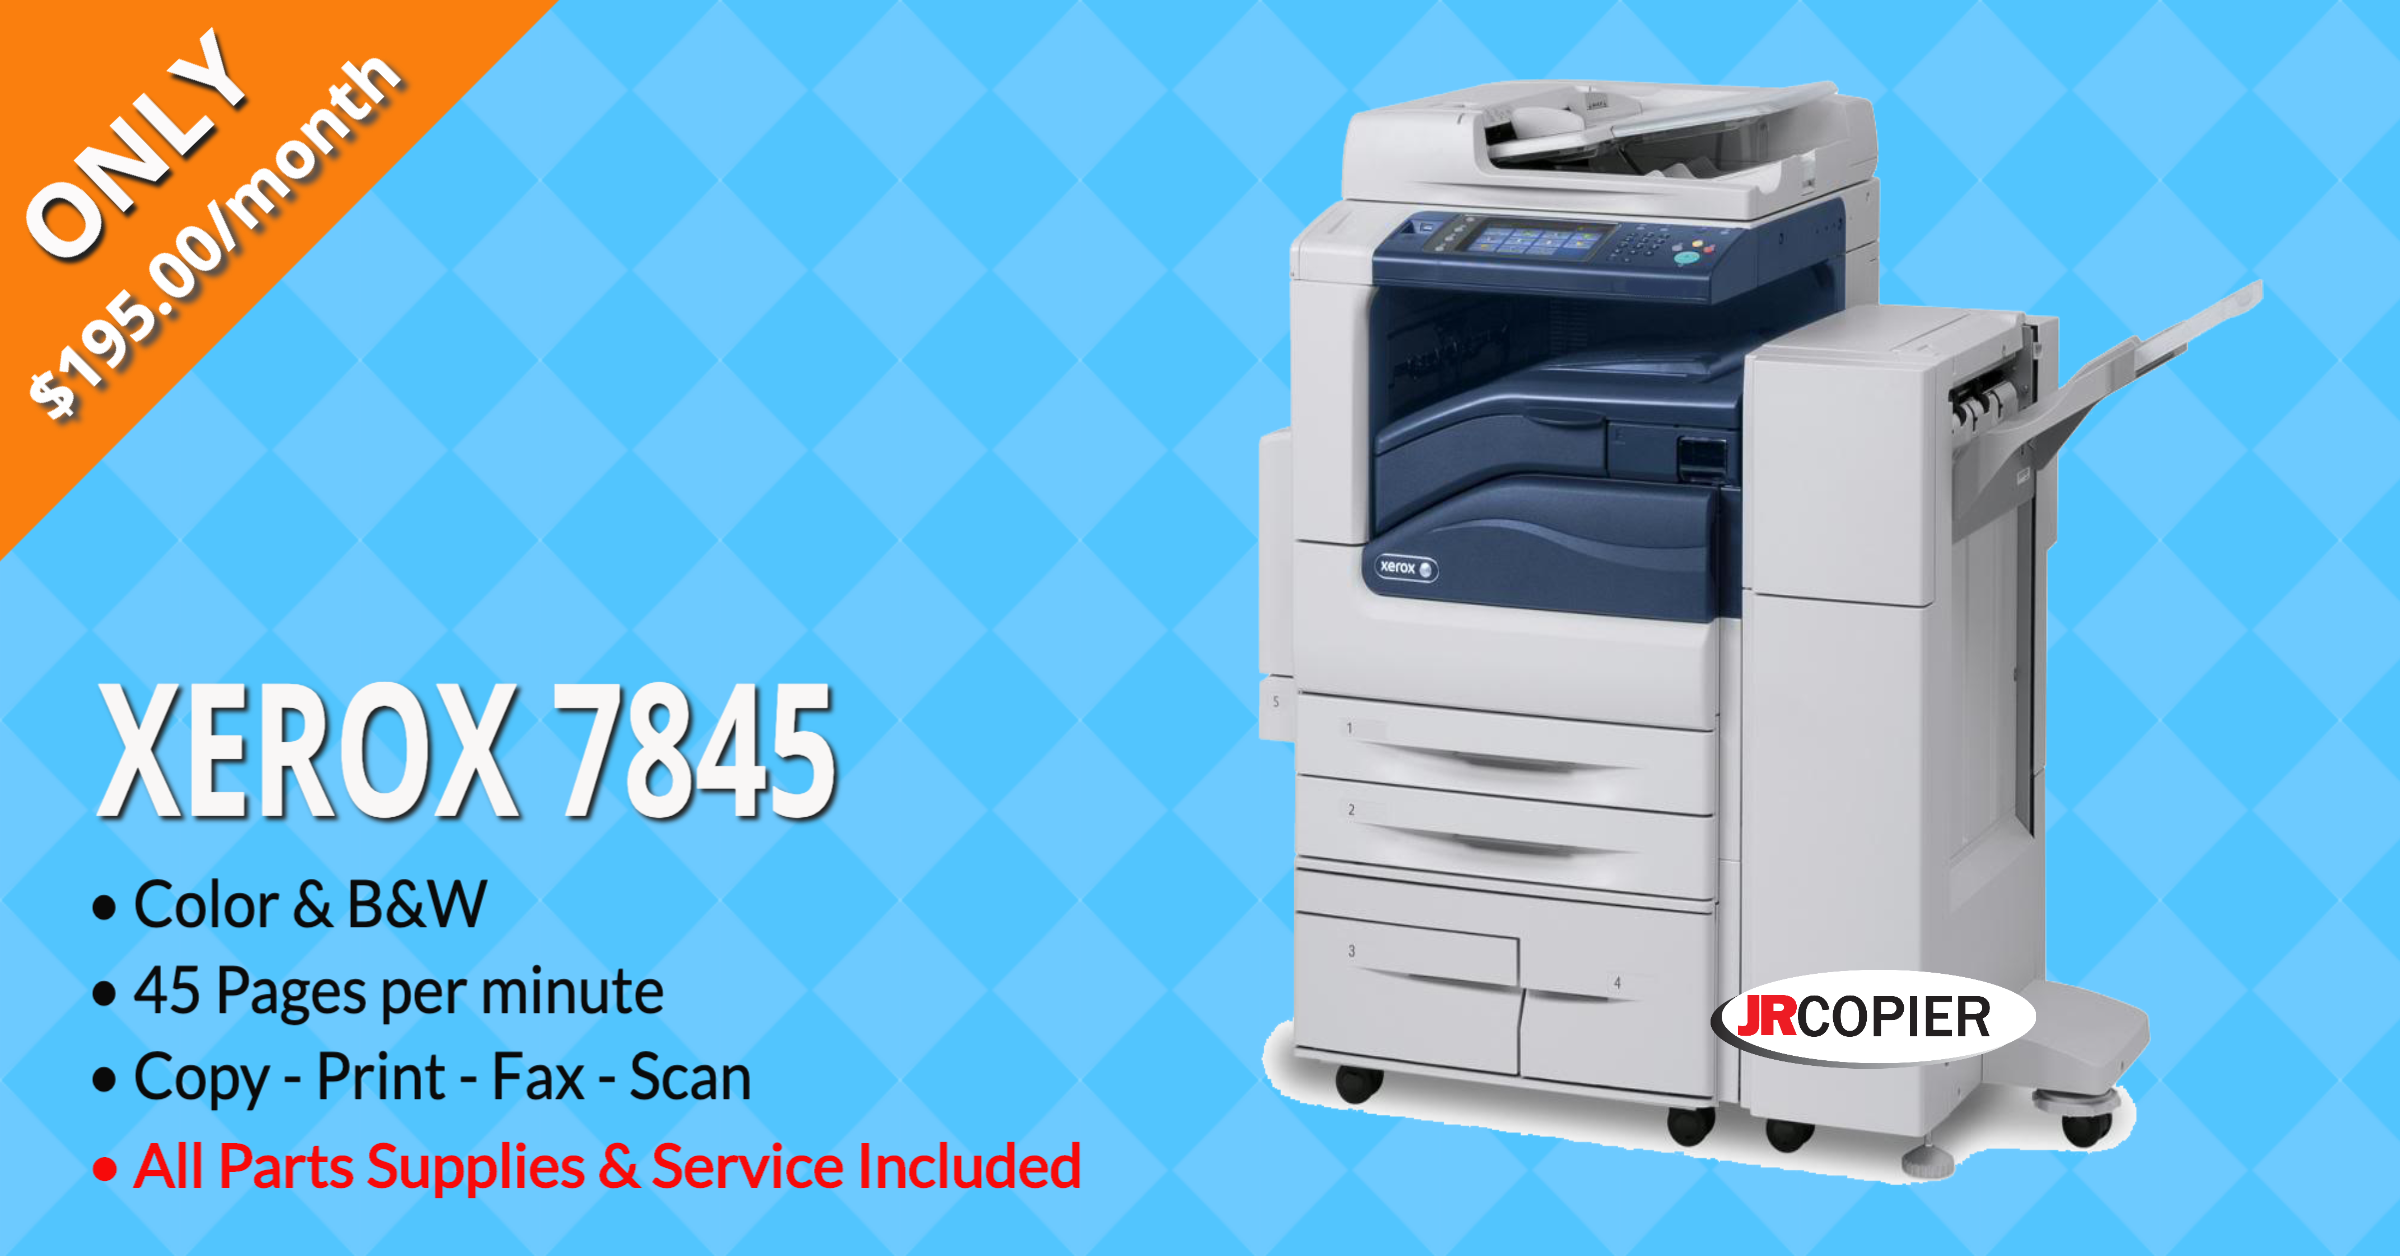 Office Printer Rental 33424, 33425, 33426, 33435, 33436, 33437, 33472, 33473, 33474, 33483